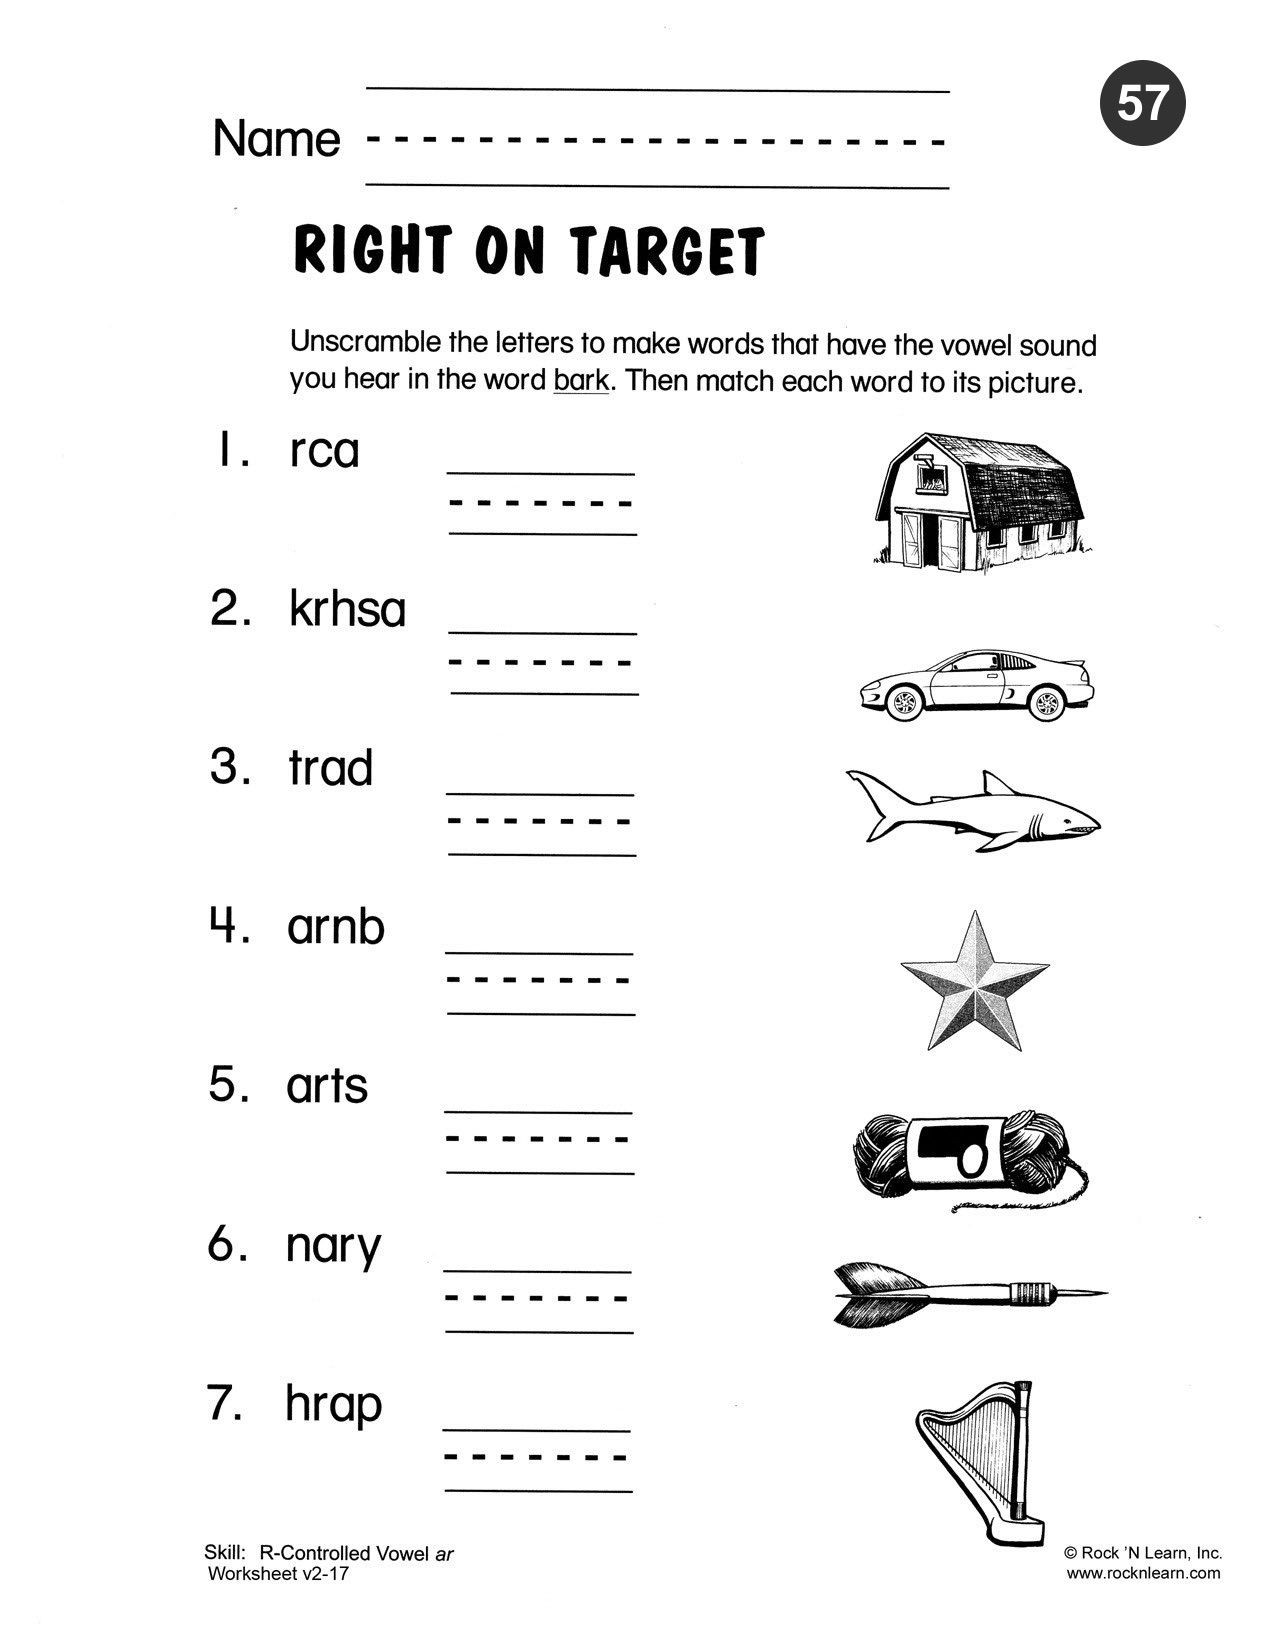 Free Printable Long Vowel Worksheets Unscramble the Letters to Make the Words that Have the Vowel